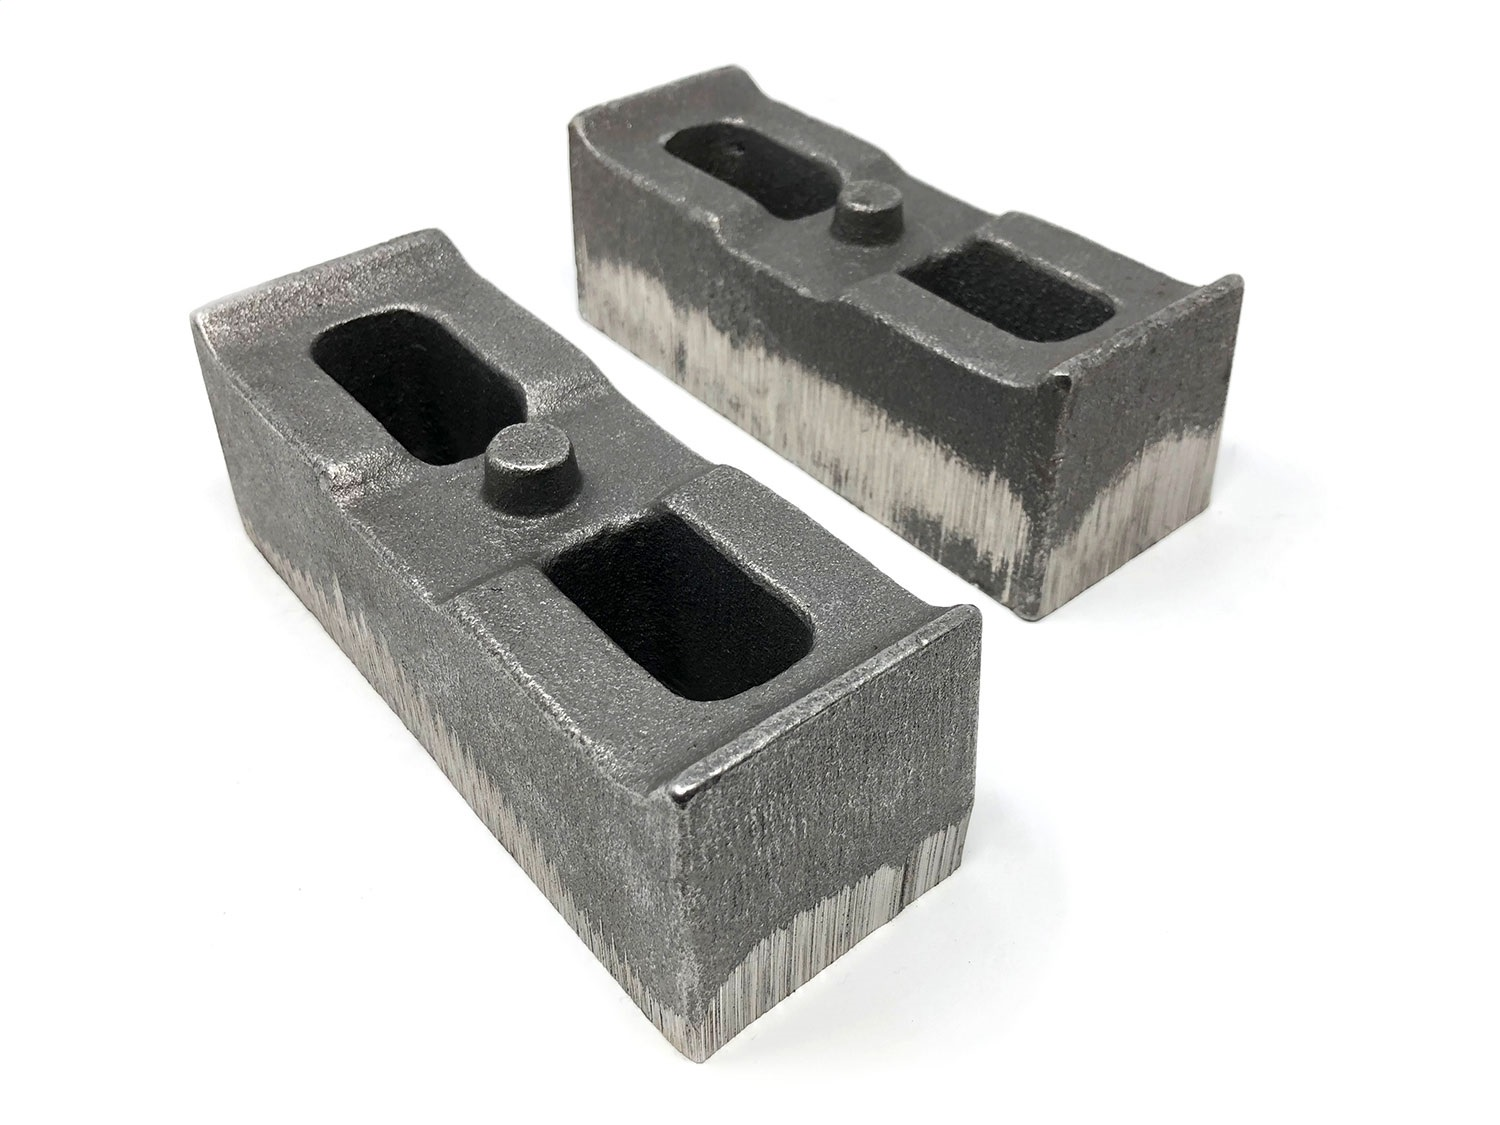 Axle Lift Blocks, 2 in. X 2.5 in., Pair, No Taper, Replaces Factory Blocks On Vehicles Equipped w/Them, Do Not Stack